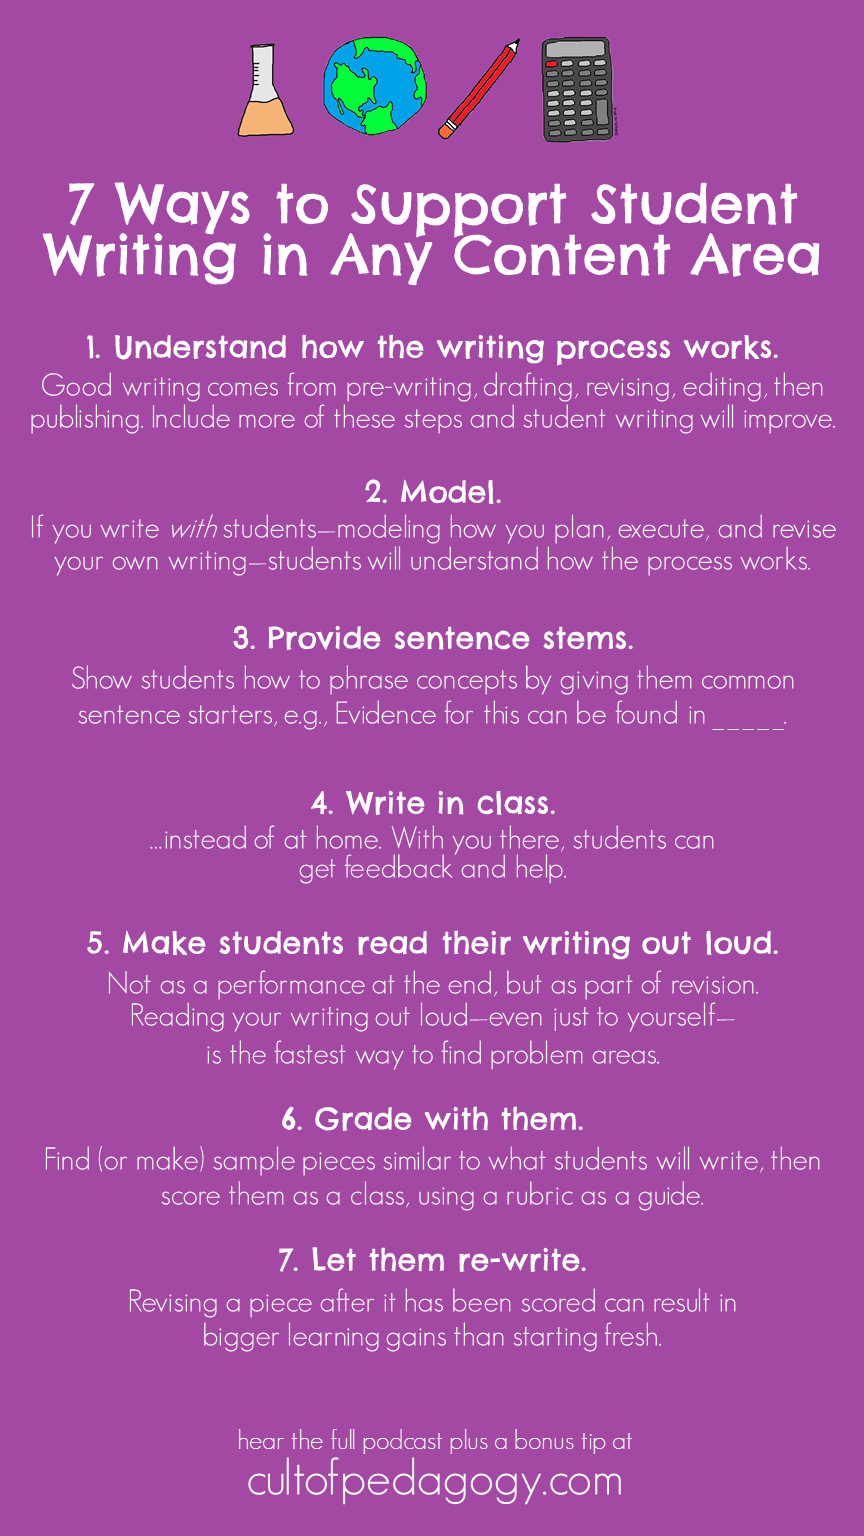 7 Easy Ways to Support Student Writing in Any Content Area